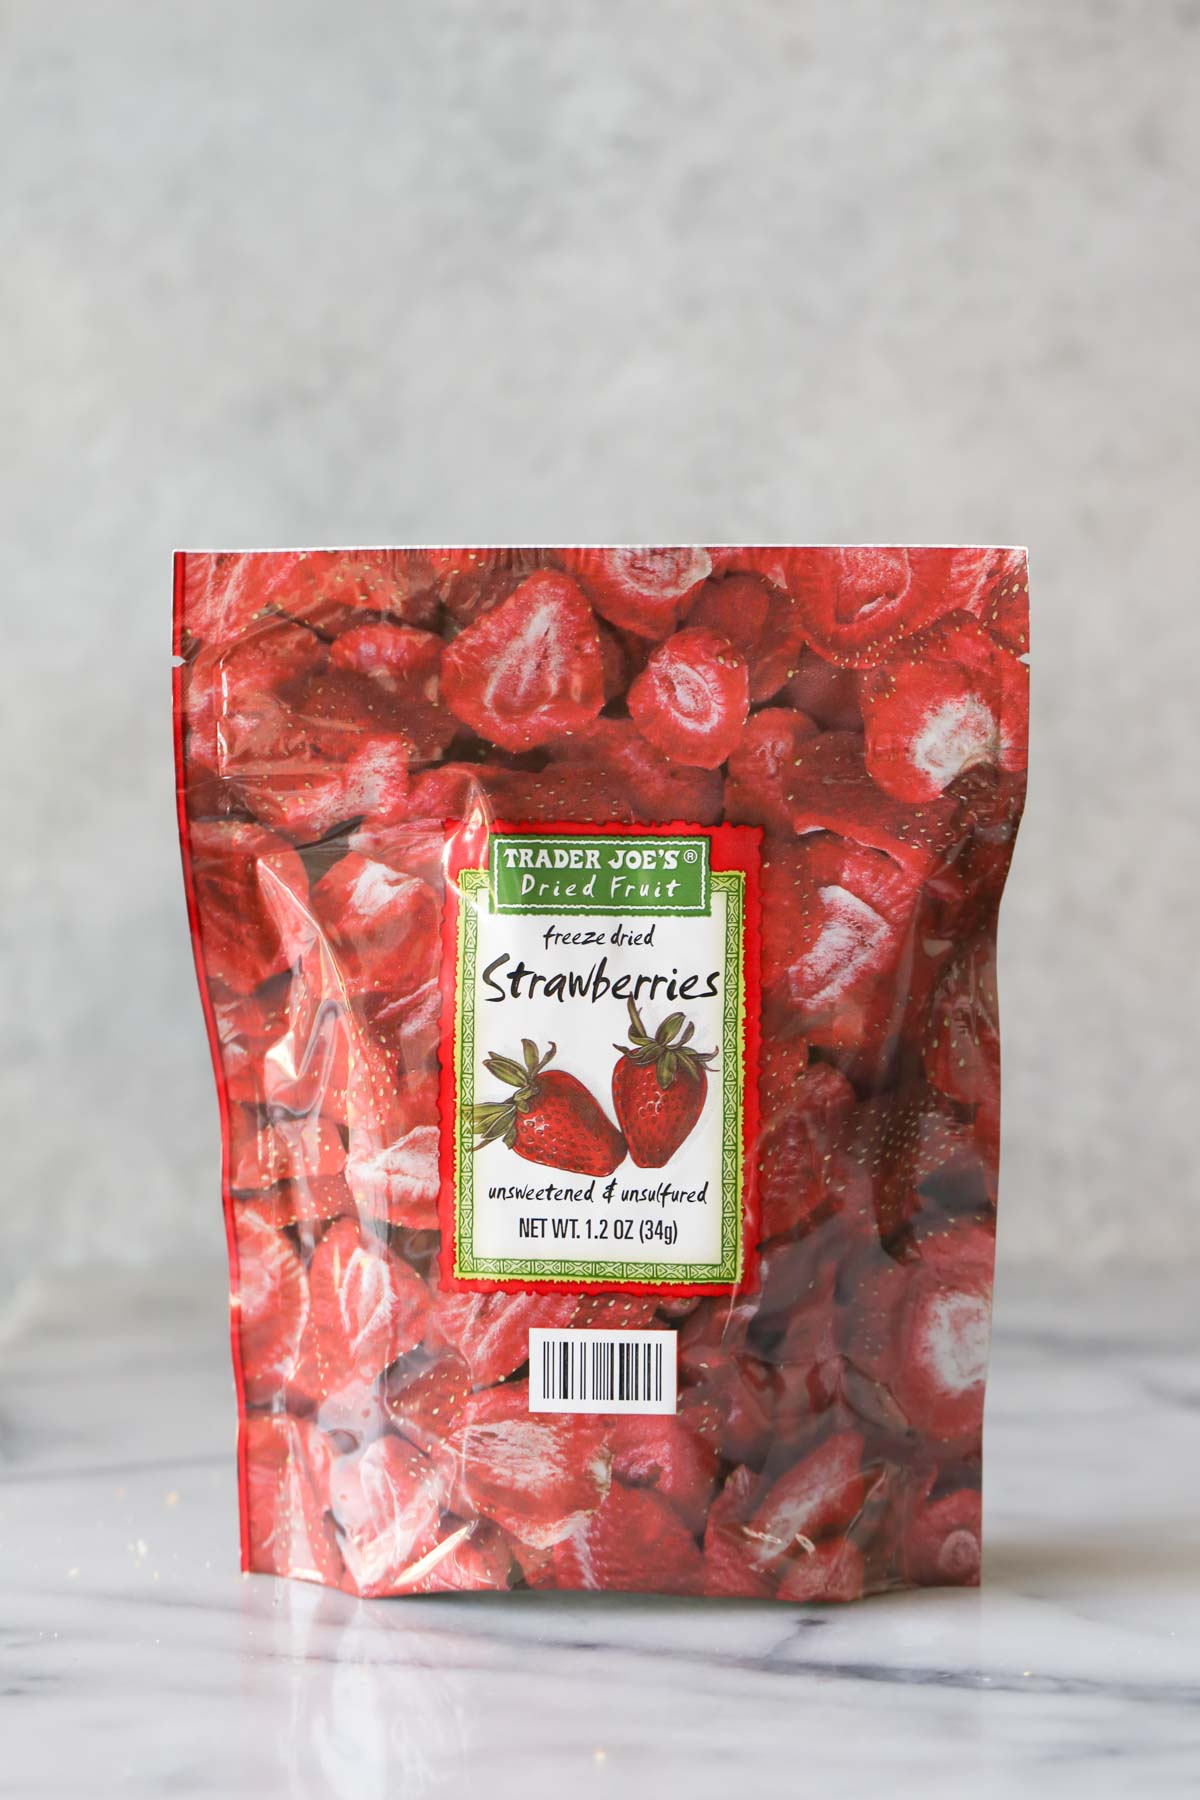 A package of Trader Joe's Freeze Dried Strawberries that are used in the recipe for Strawberry Rice Krispie Treats.